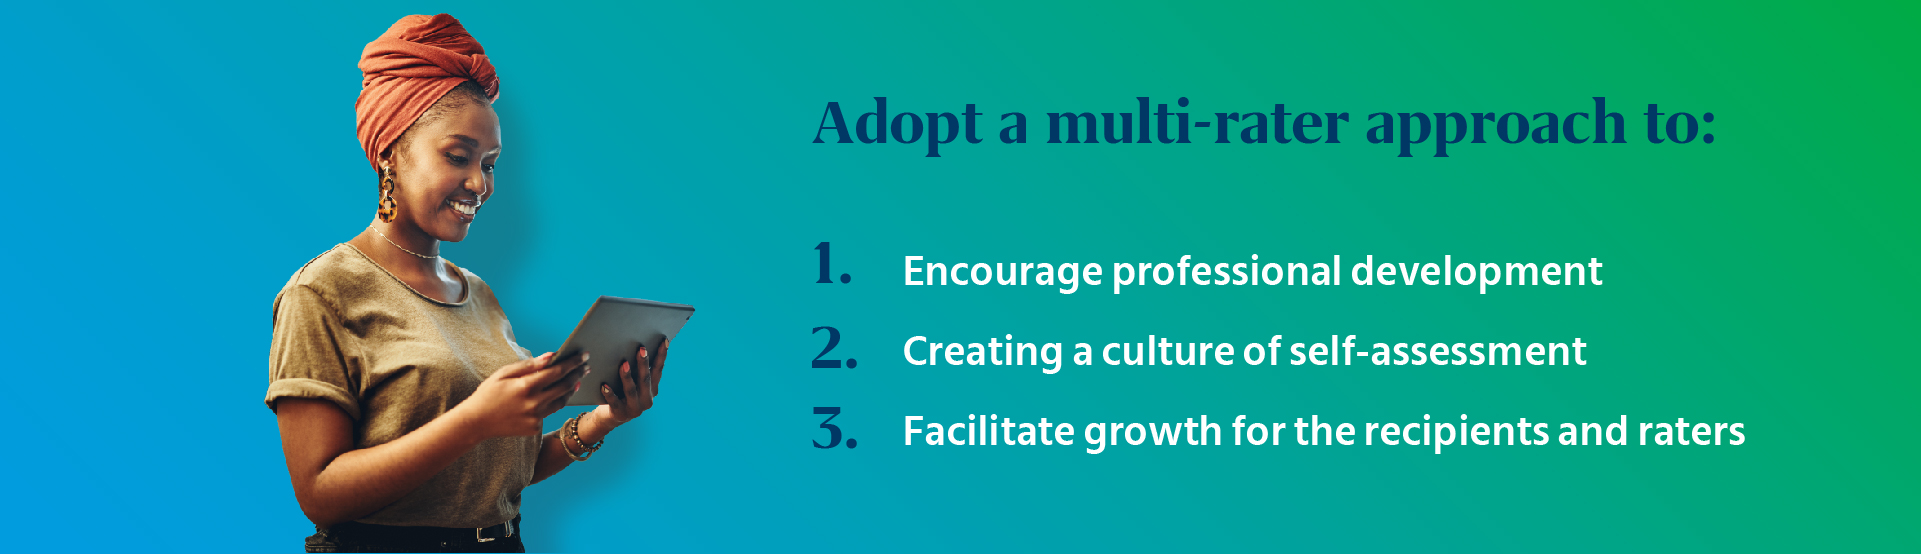 It is also essential to adopt a multi-rater approach to